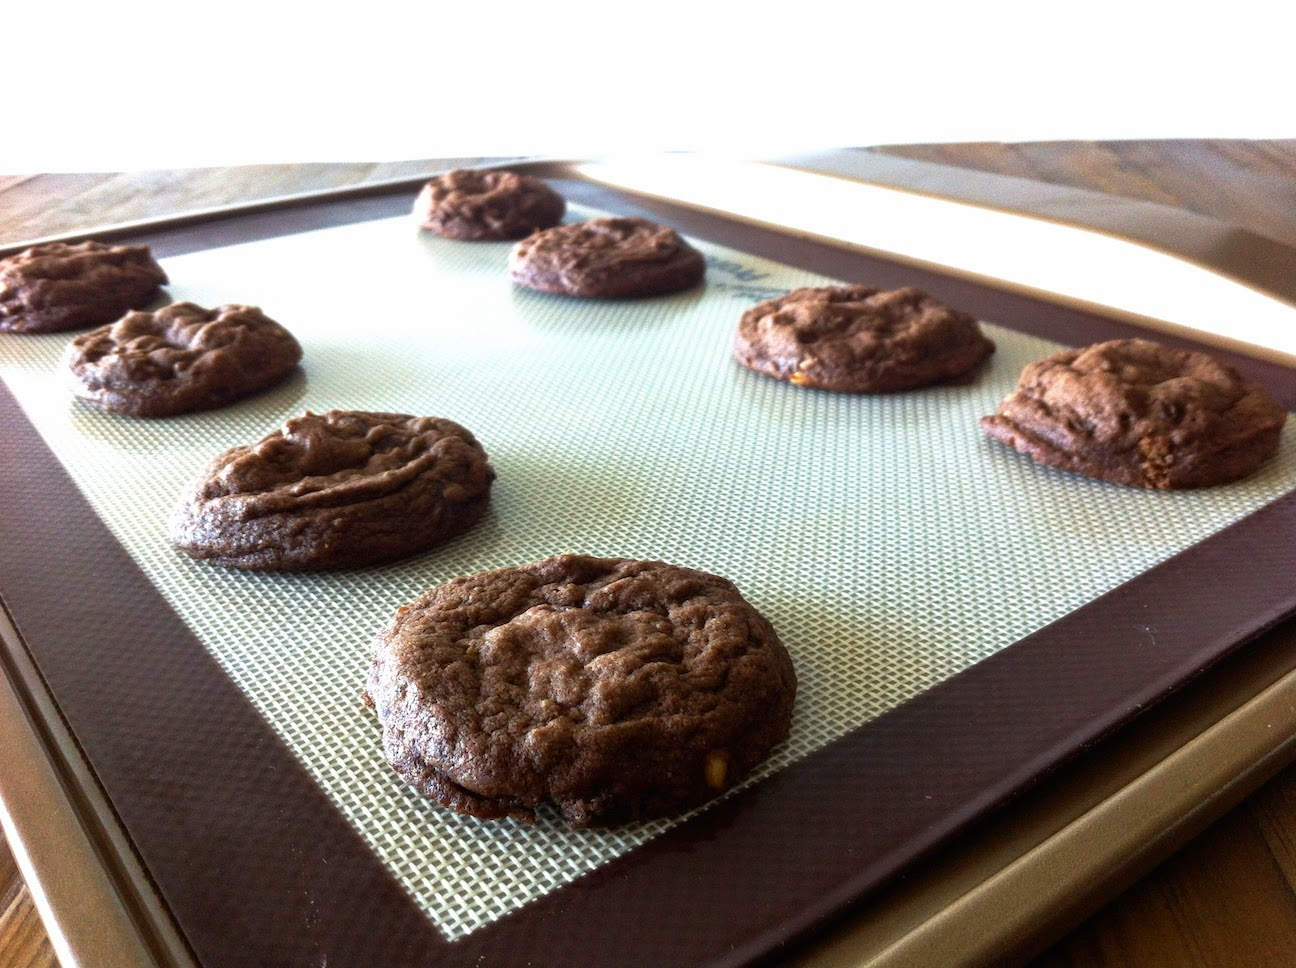 cookies on a baking sheet.